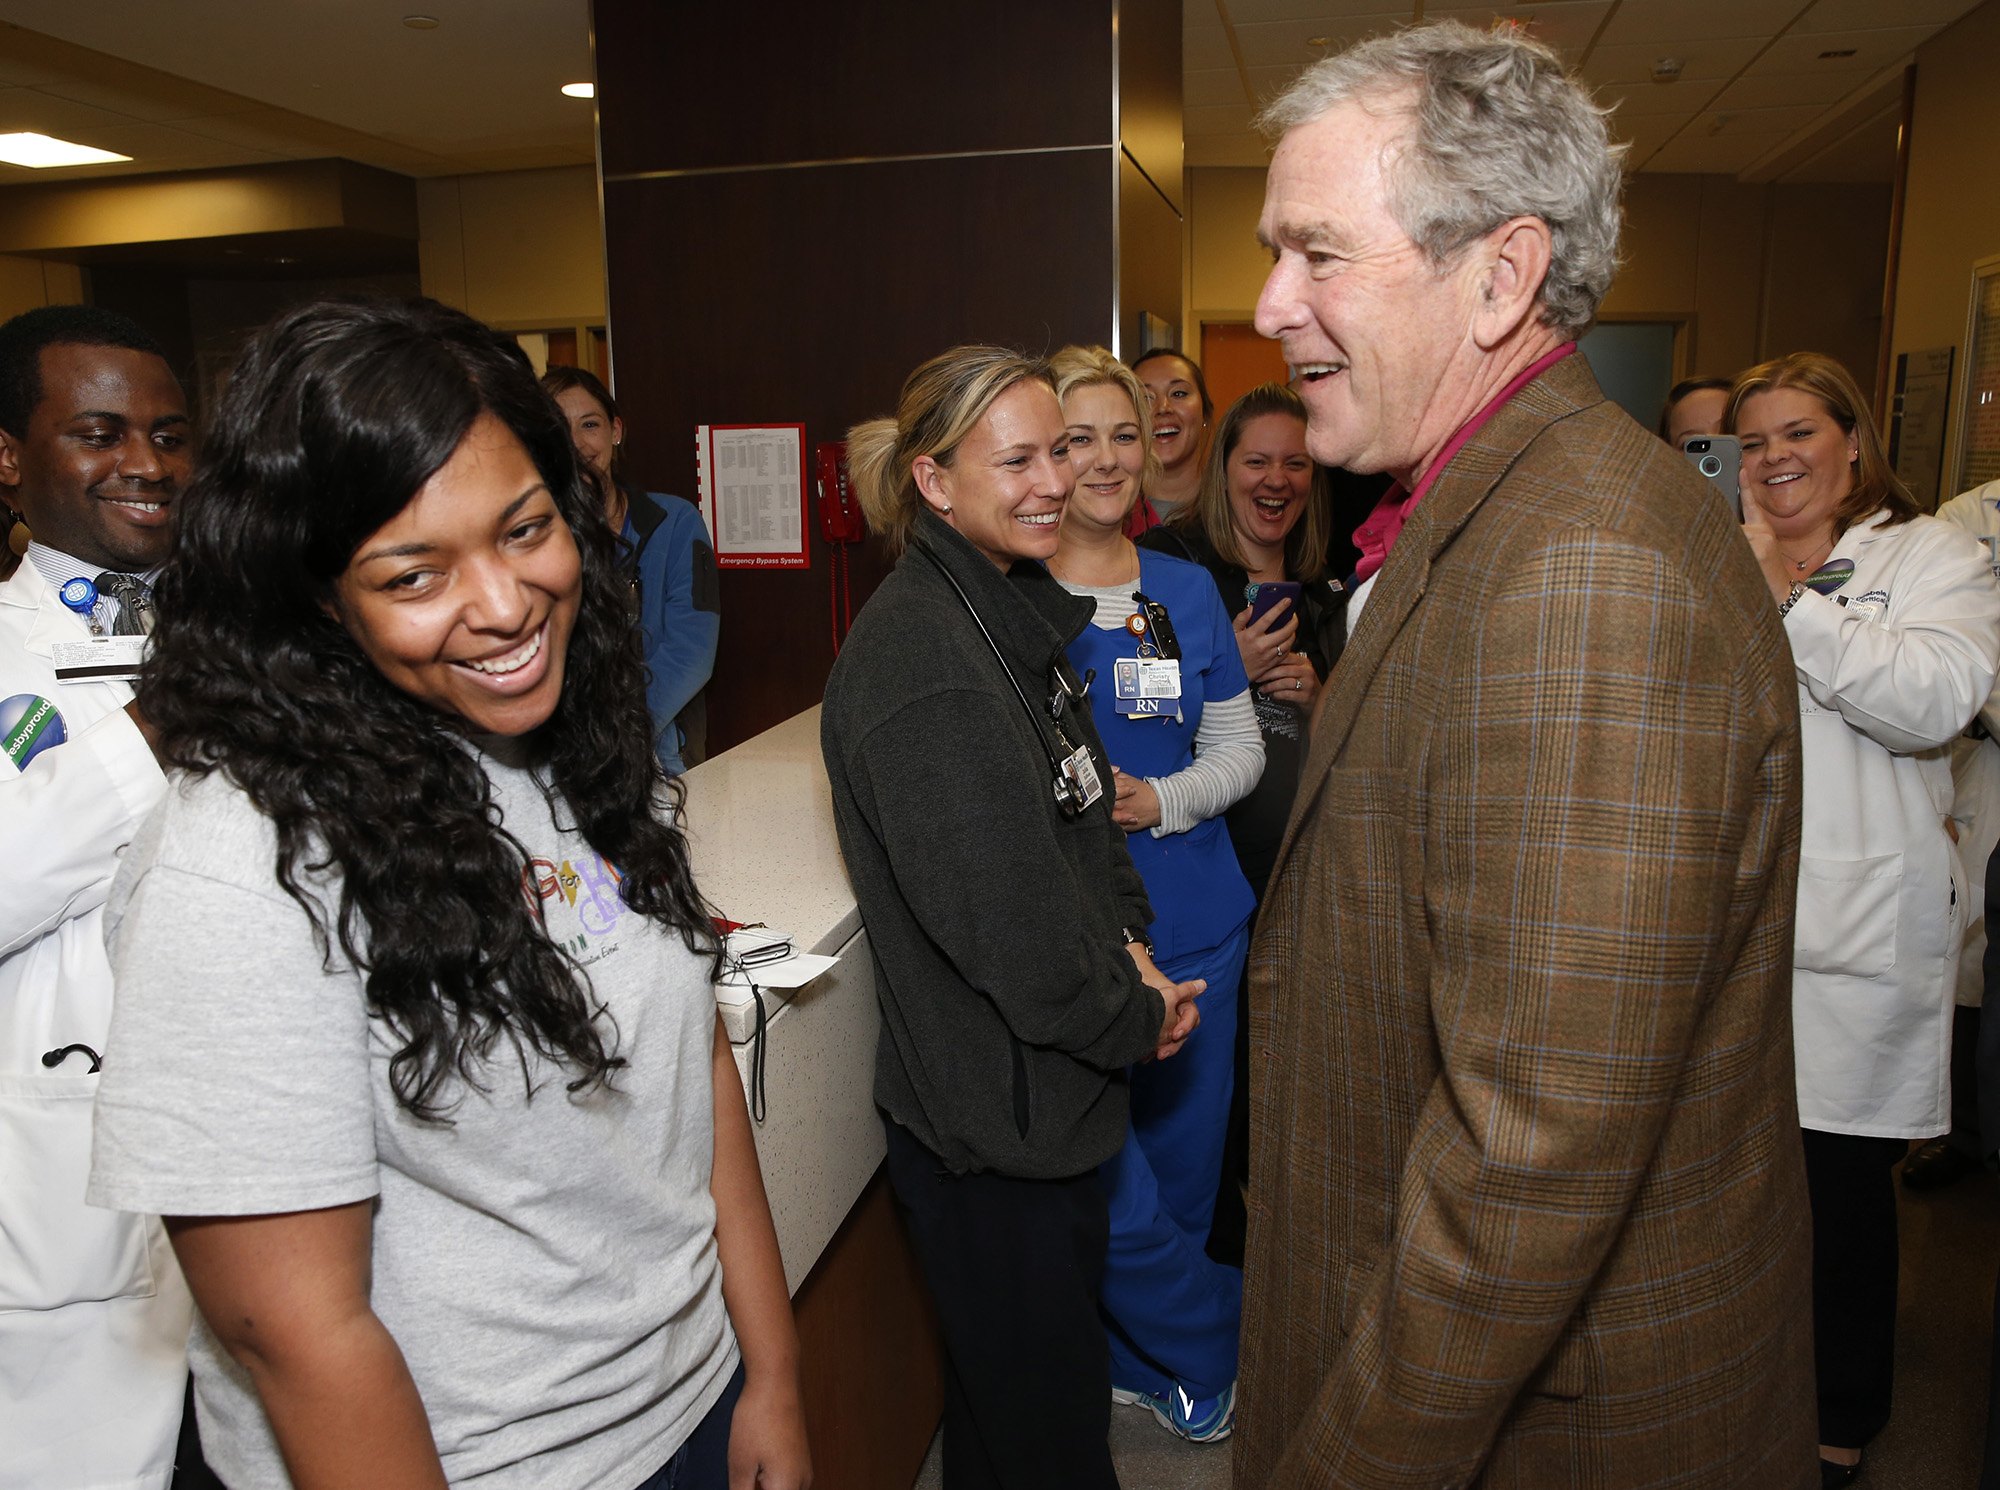 Amber Vinson, the nurse that had Ebola and is now Ebola free, got a hug and a kiss from Former President George W. Bush at Texas Health Presbyterian Hospital of Dallas on Friday, November 7, 2014 in recognition of the official end of the Ebola outbreak that started there in late September. (David Woo/The Dallas Morning News)